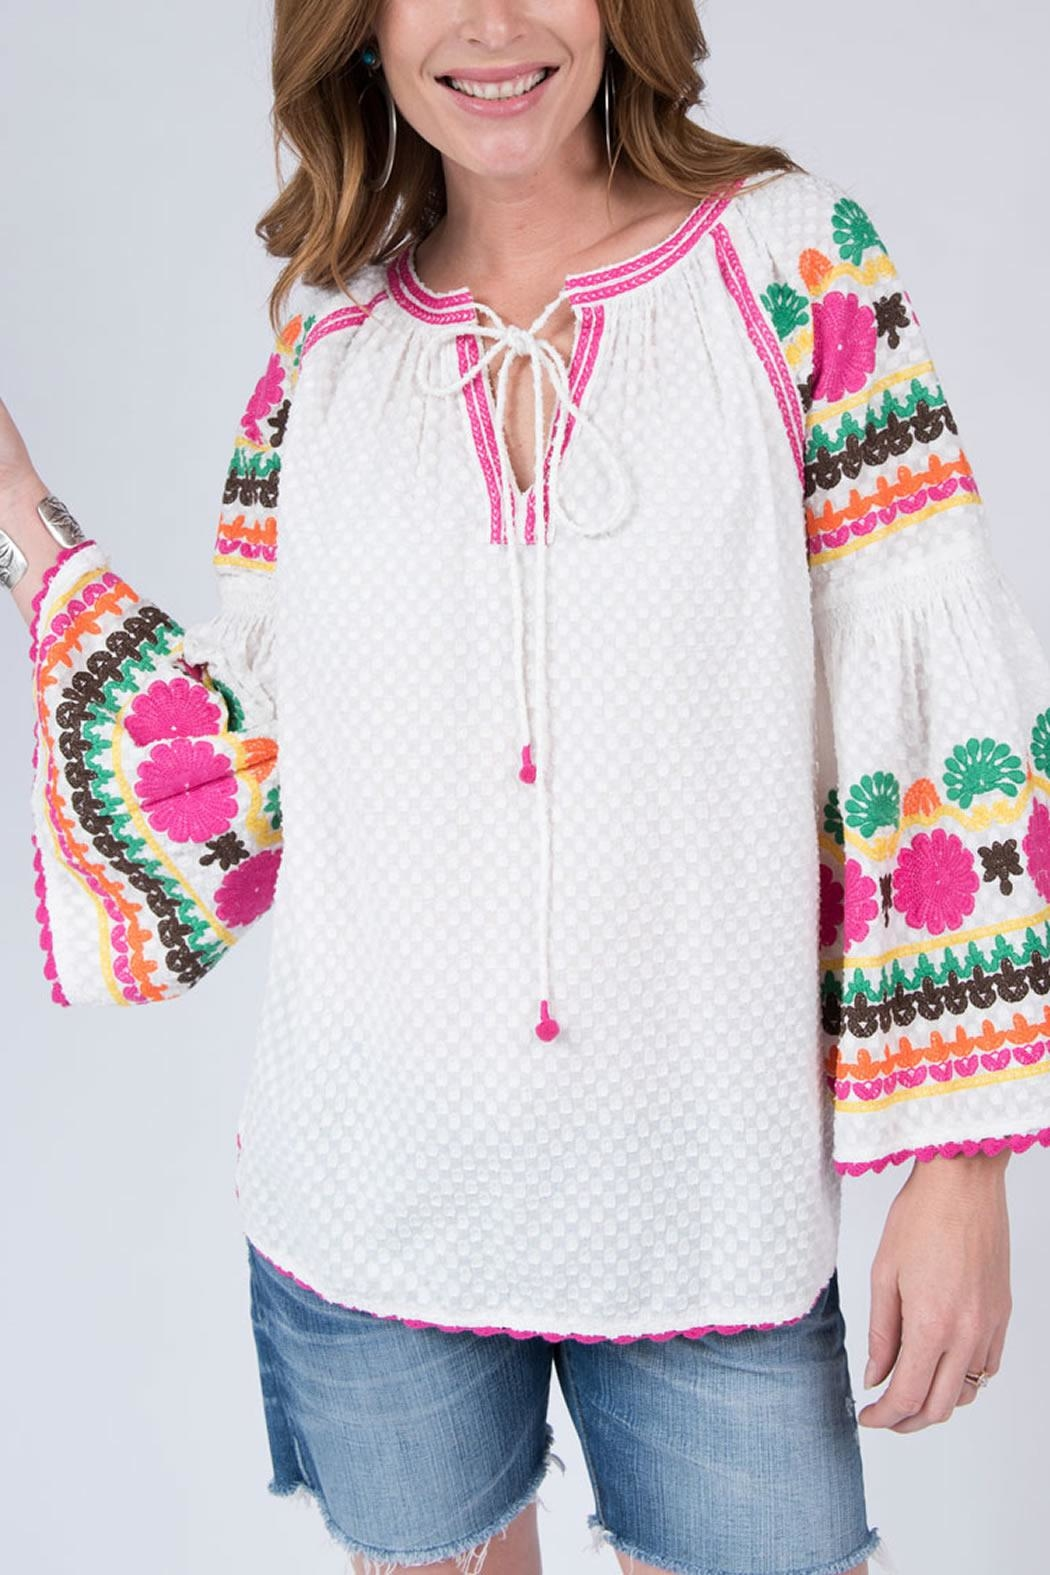 Ivy Jane Daisy Embroidered Top - Main Image